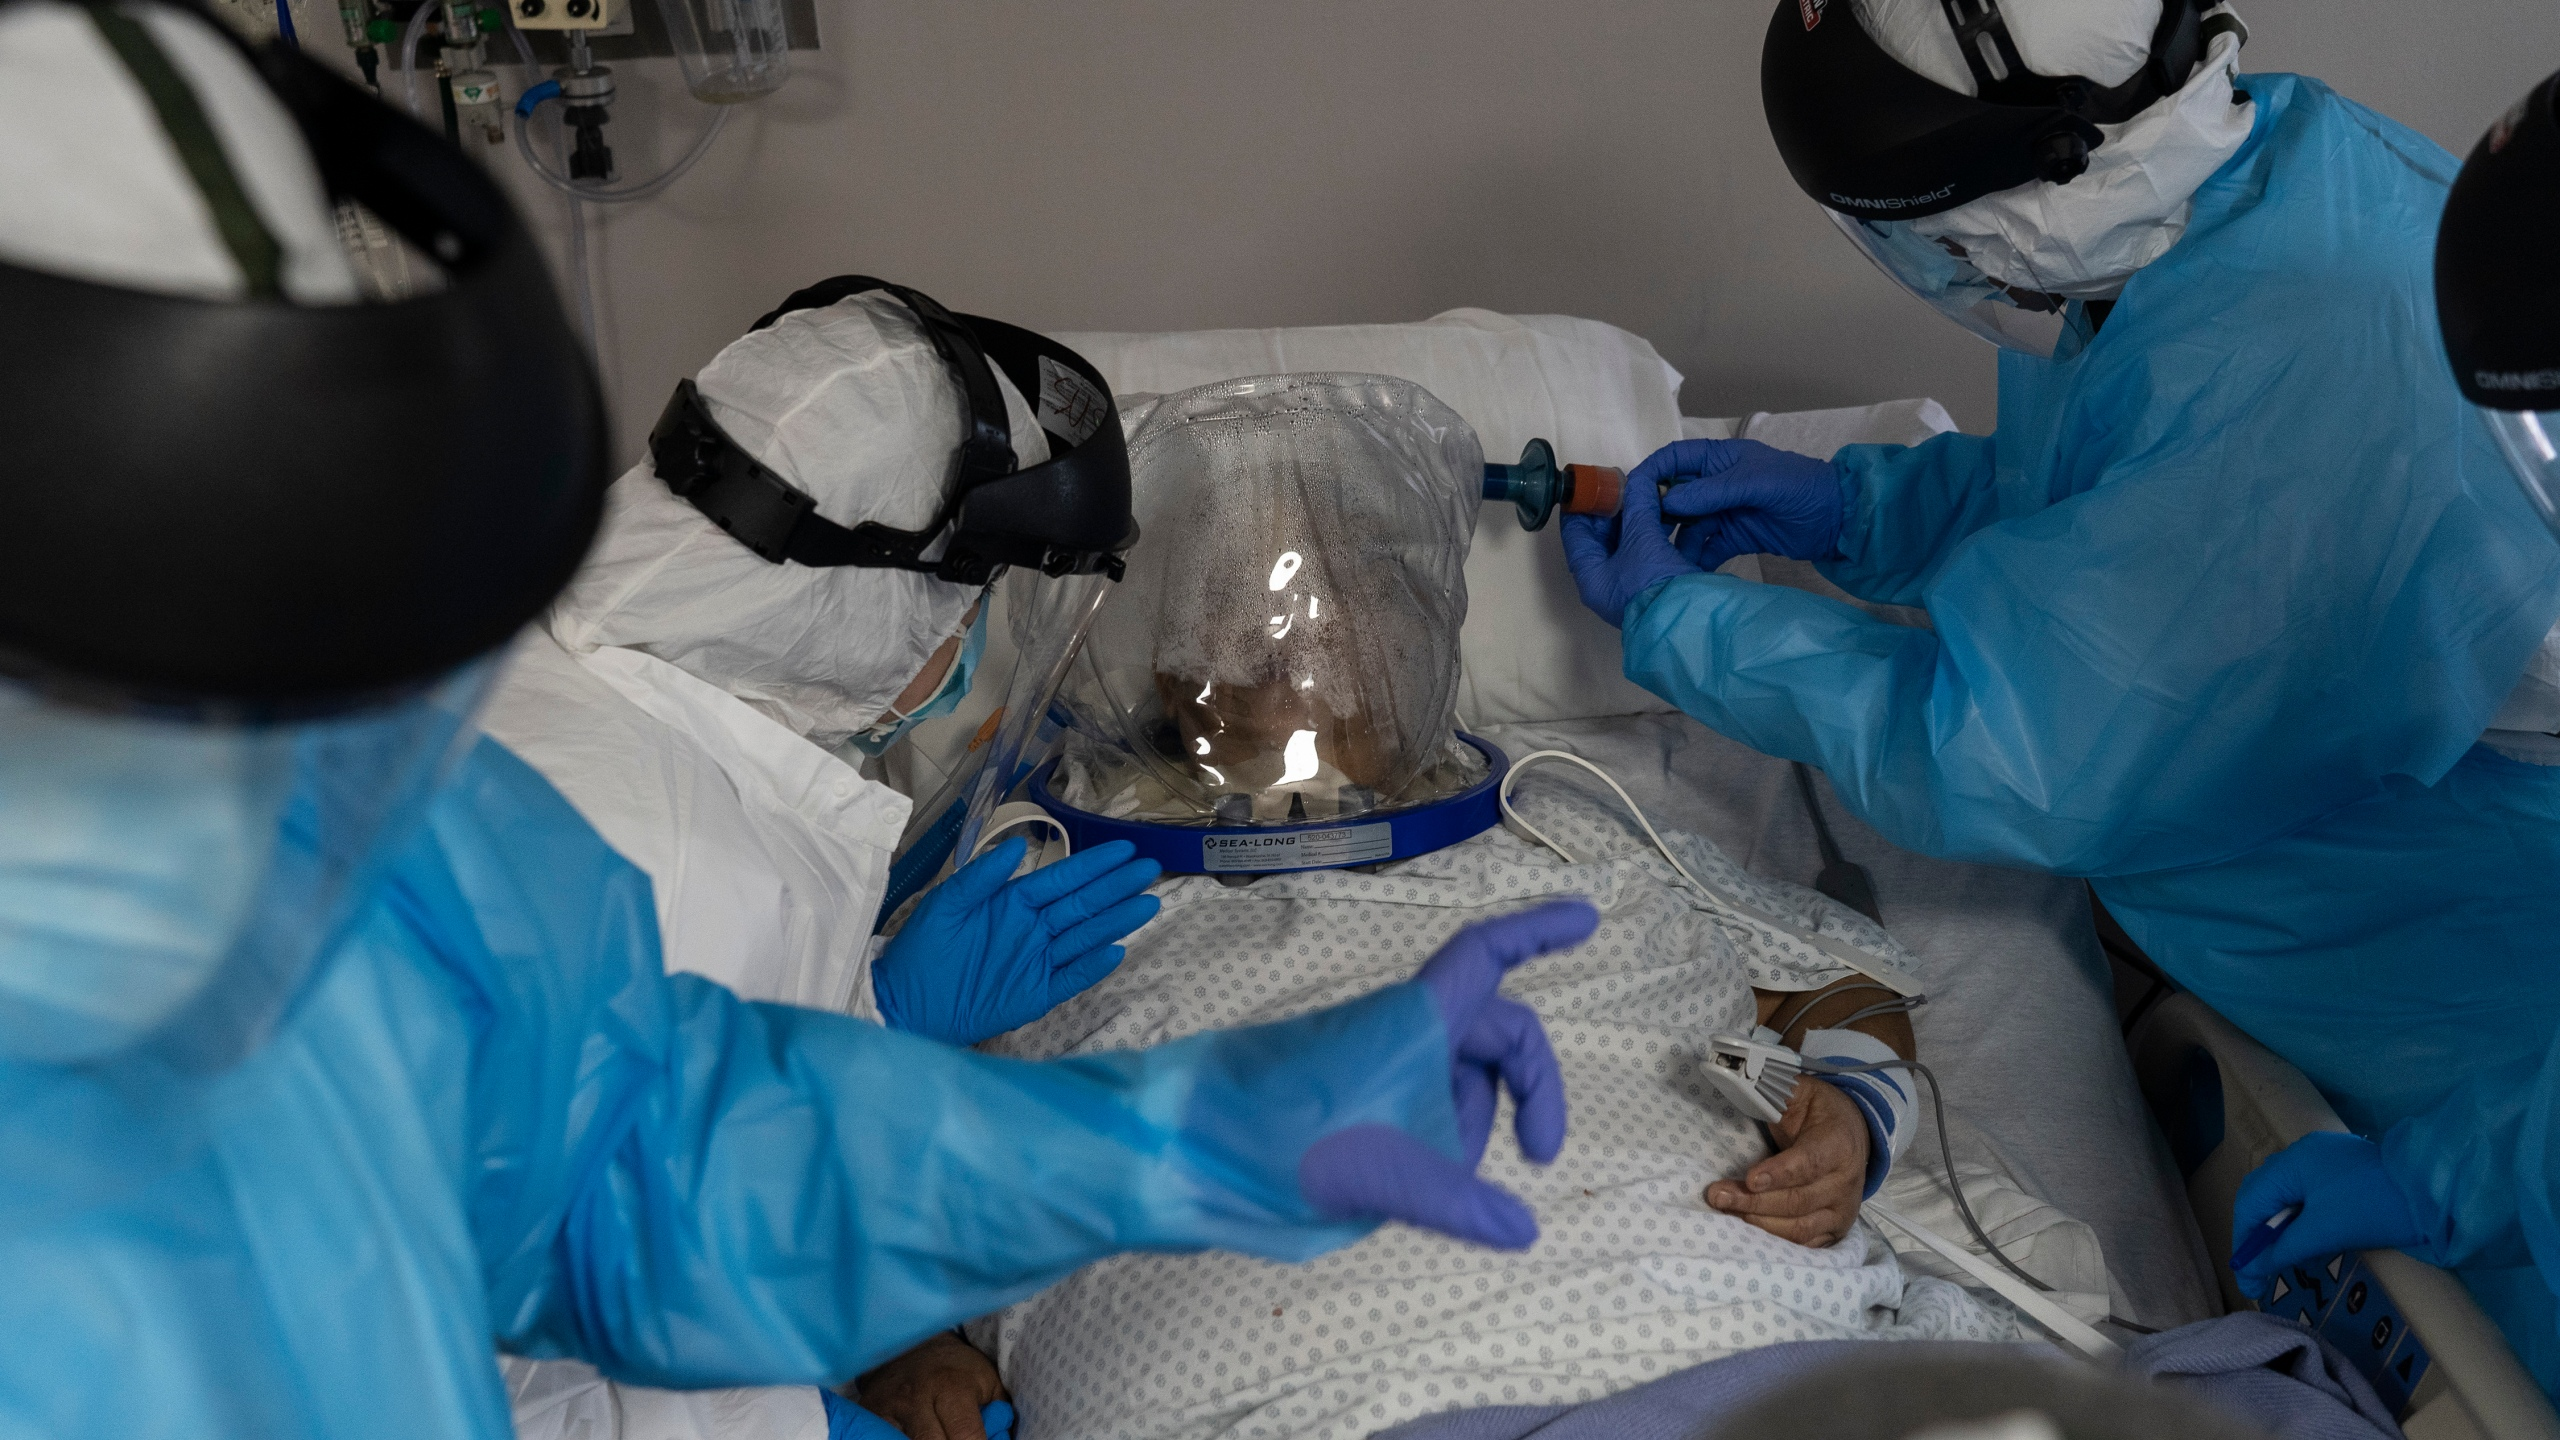 Medical workers treat a patient who is wearing a helmet-based ventilator in the COVID-19 intensive care unit at the United Memorial Medical Center on July 28, 2020 in Houston, Texas. COVID-19 cases and hospitalizations have spiked since Texas reopened, pushing intensive care units to full capacity and sparking concerns about a surge in fatalities as the virus spreads. (Go Nakamura/Getty Images)